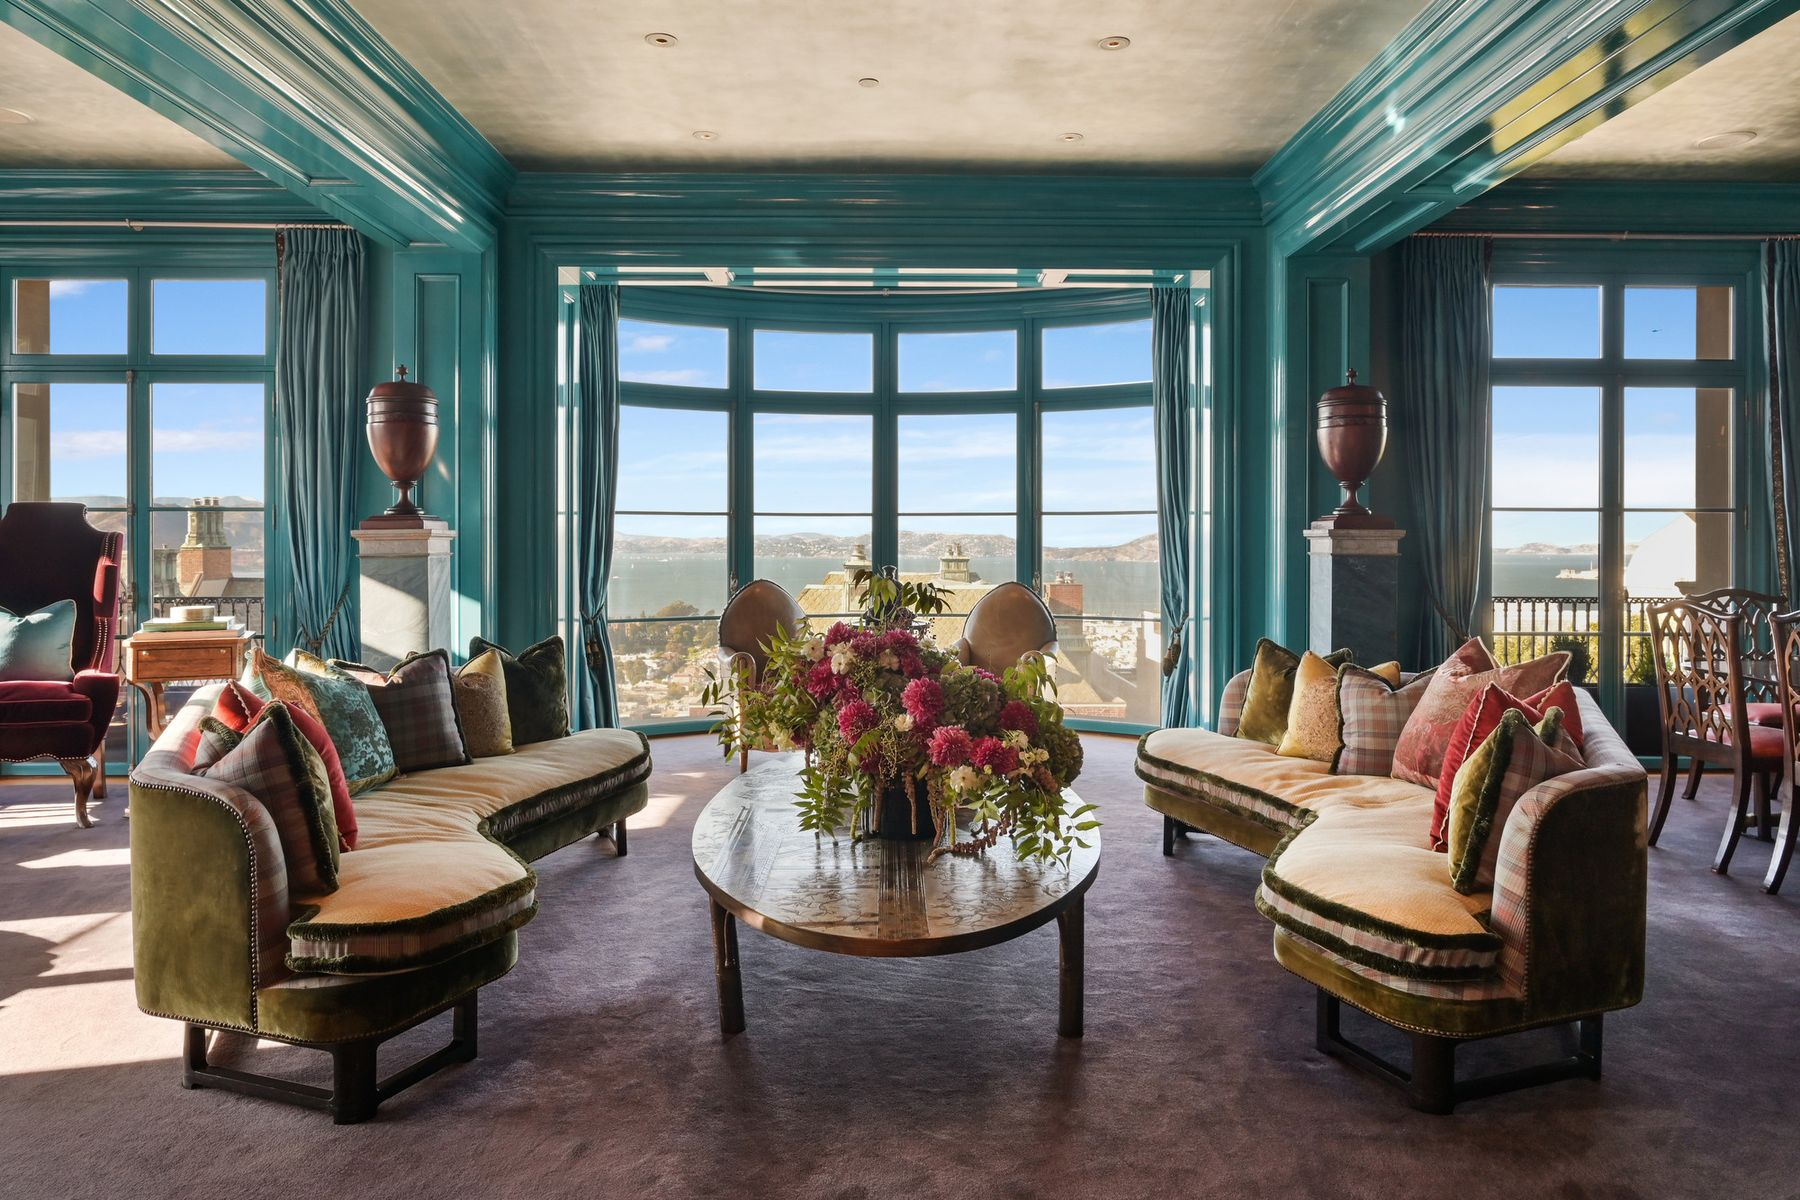 Additional photo for property listing at Bay View Mansion On Legendary Gold Coast 2799 Broadway San Francisco, California 94115 Estados Unidos